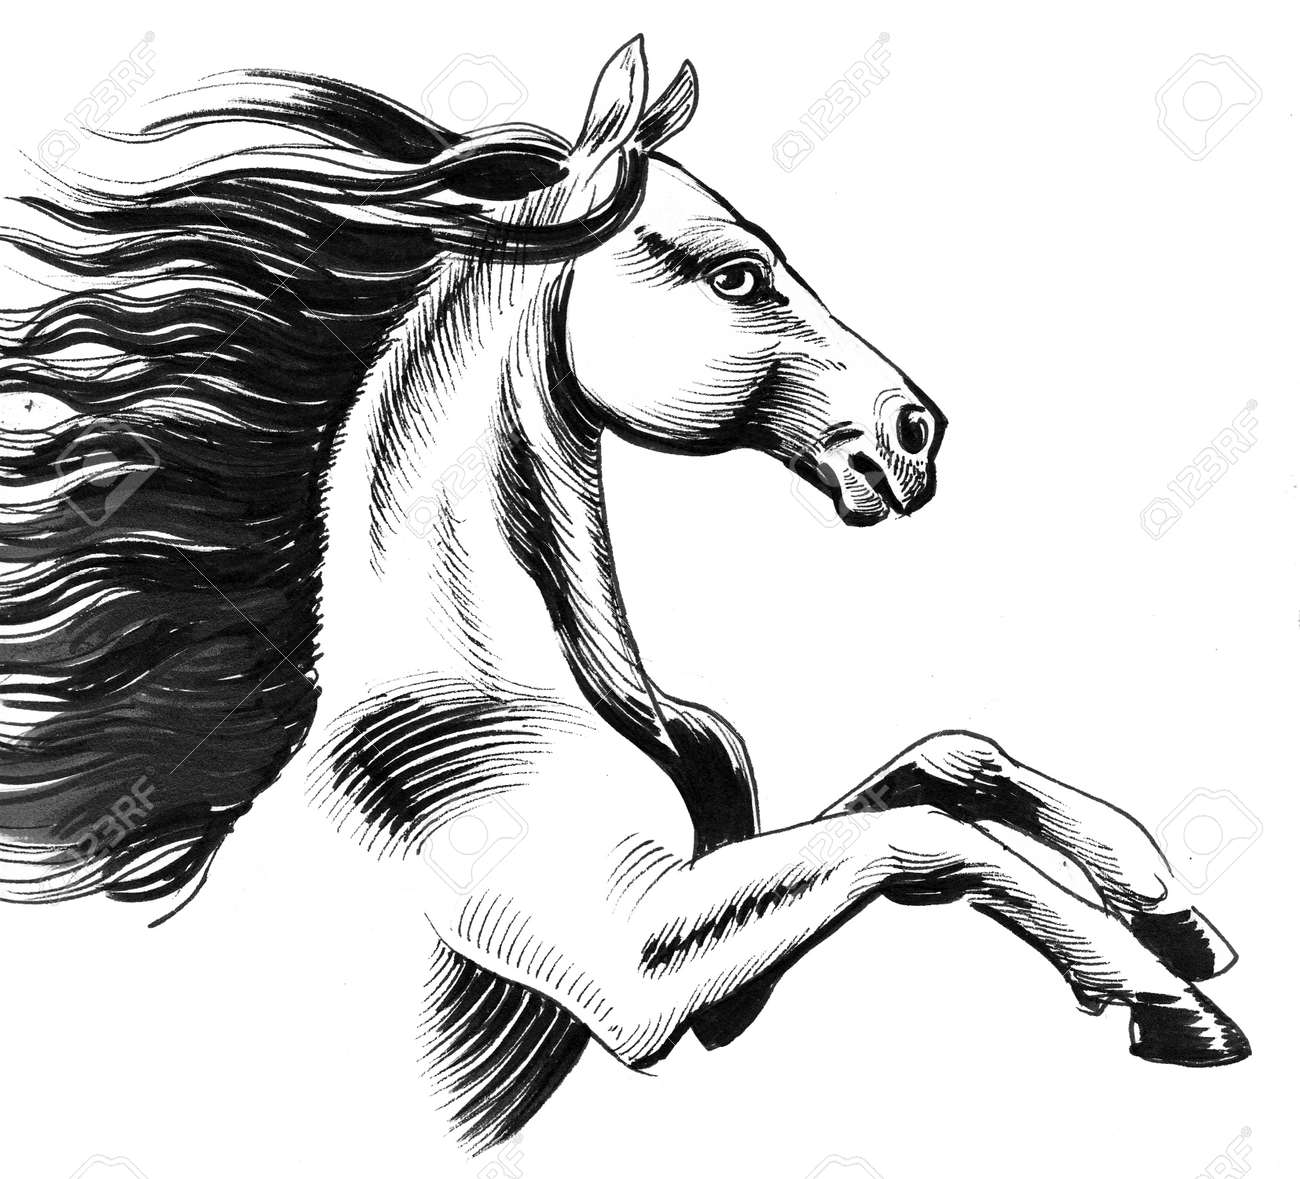 Wild Horse Ink Black And White Drawing Stock Photo Picture And Royalty Free Image Image 120883436